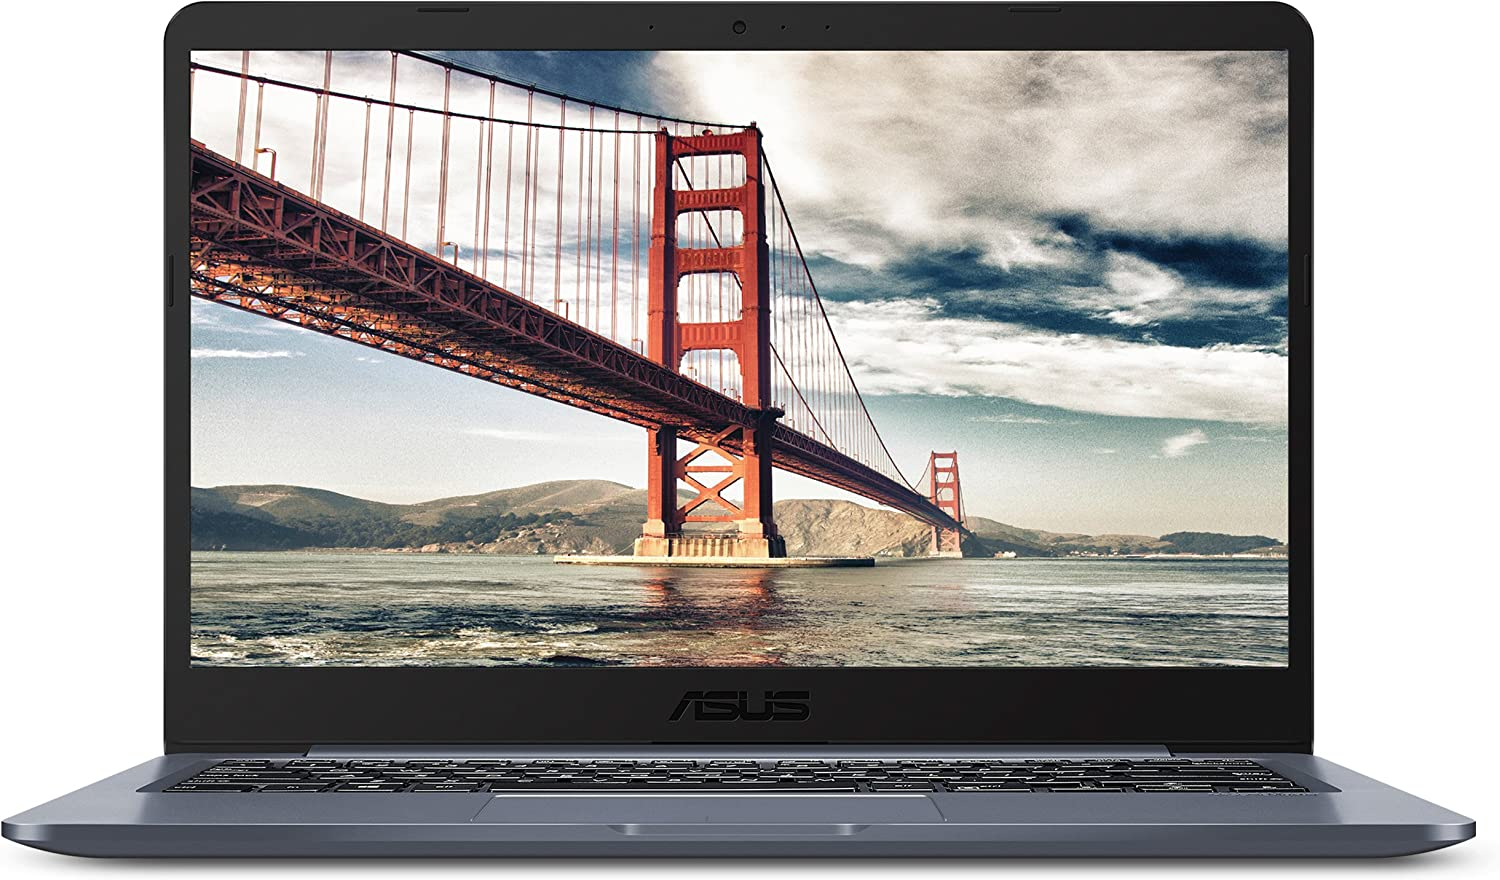 "ASUS Laptop L406 Thin and Light Laptop, 14"" HD Display, Intel Celeron N4000 Processor, 4GB RAM, 64GB eMMC Storage, Wi-Fi 5, Windows 10, Microsoft 365, Slate Gray, L406MA-WH02"